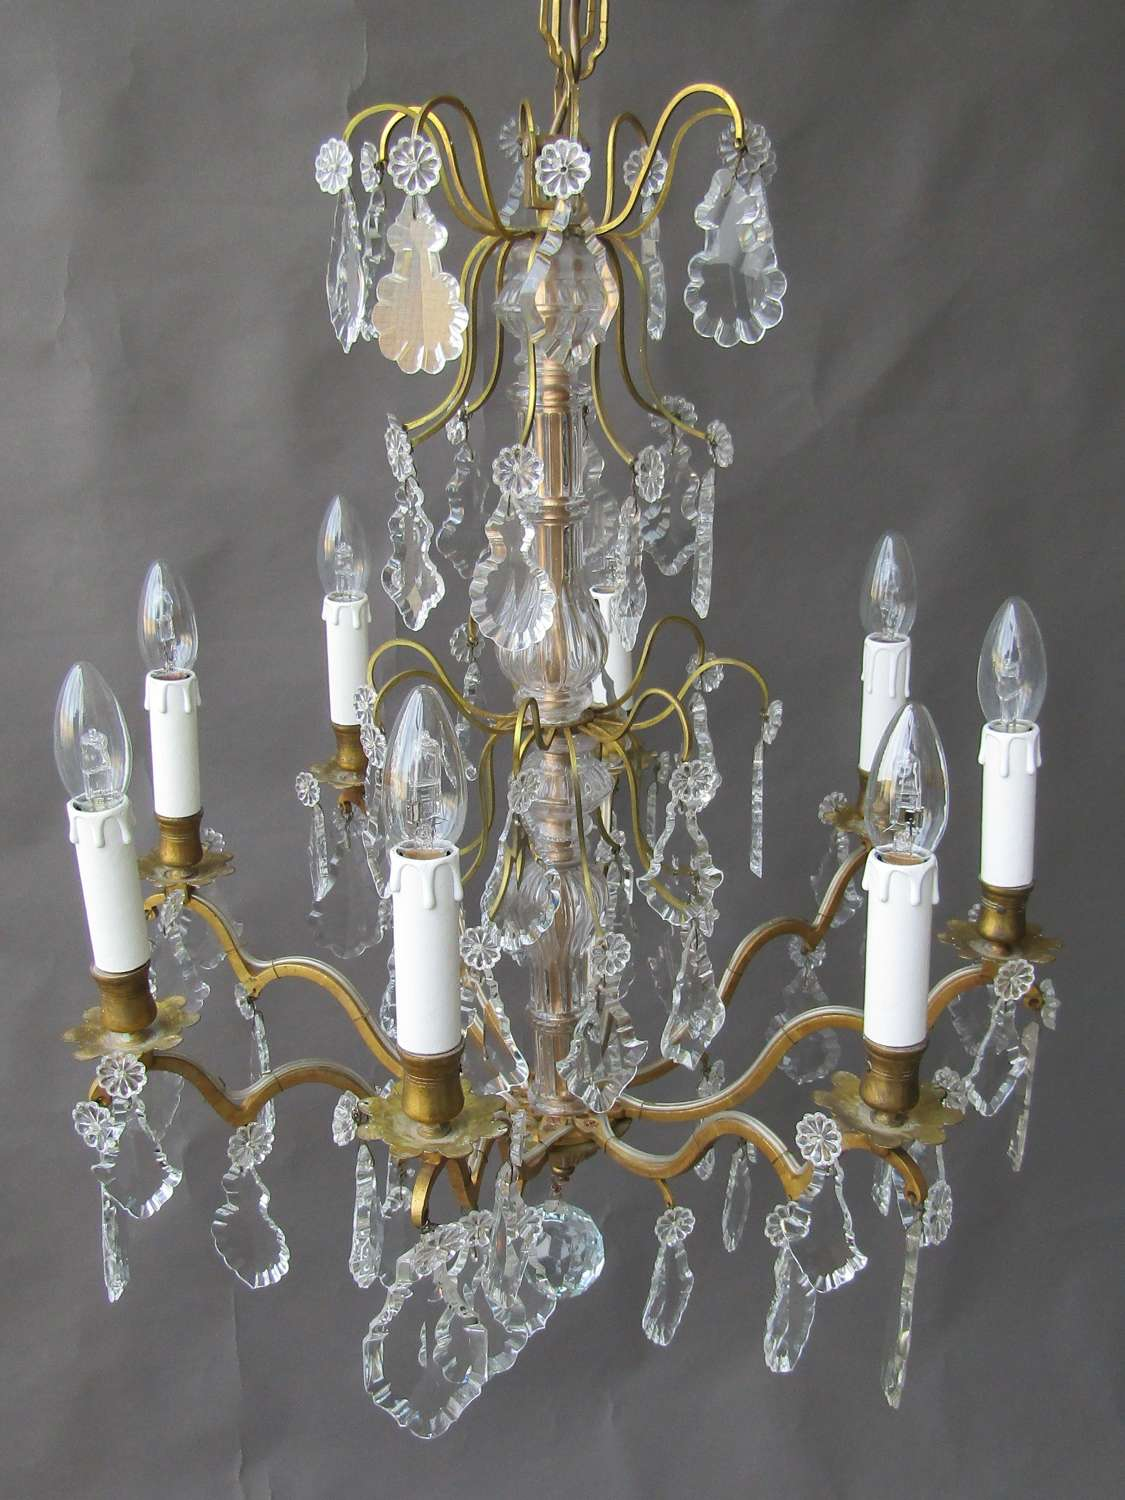 8 Arm French Chandelier Ca 1920's